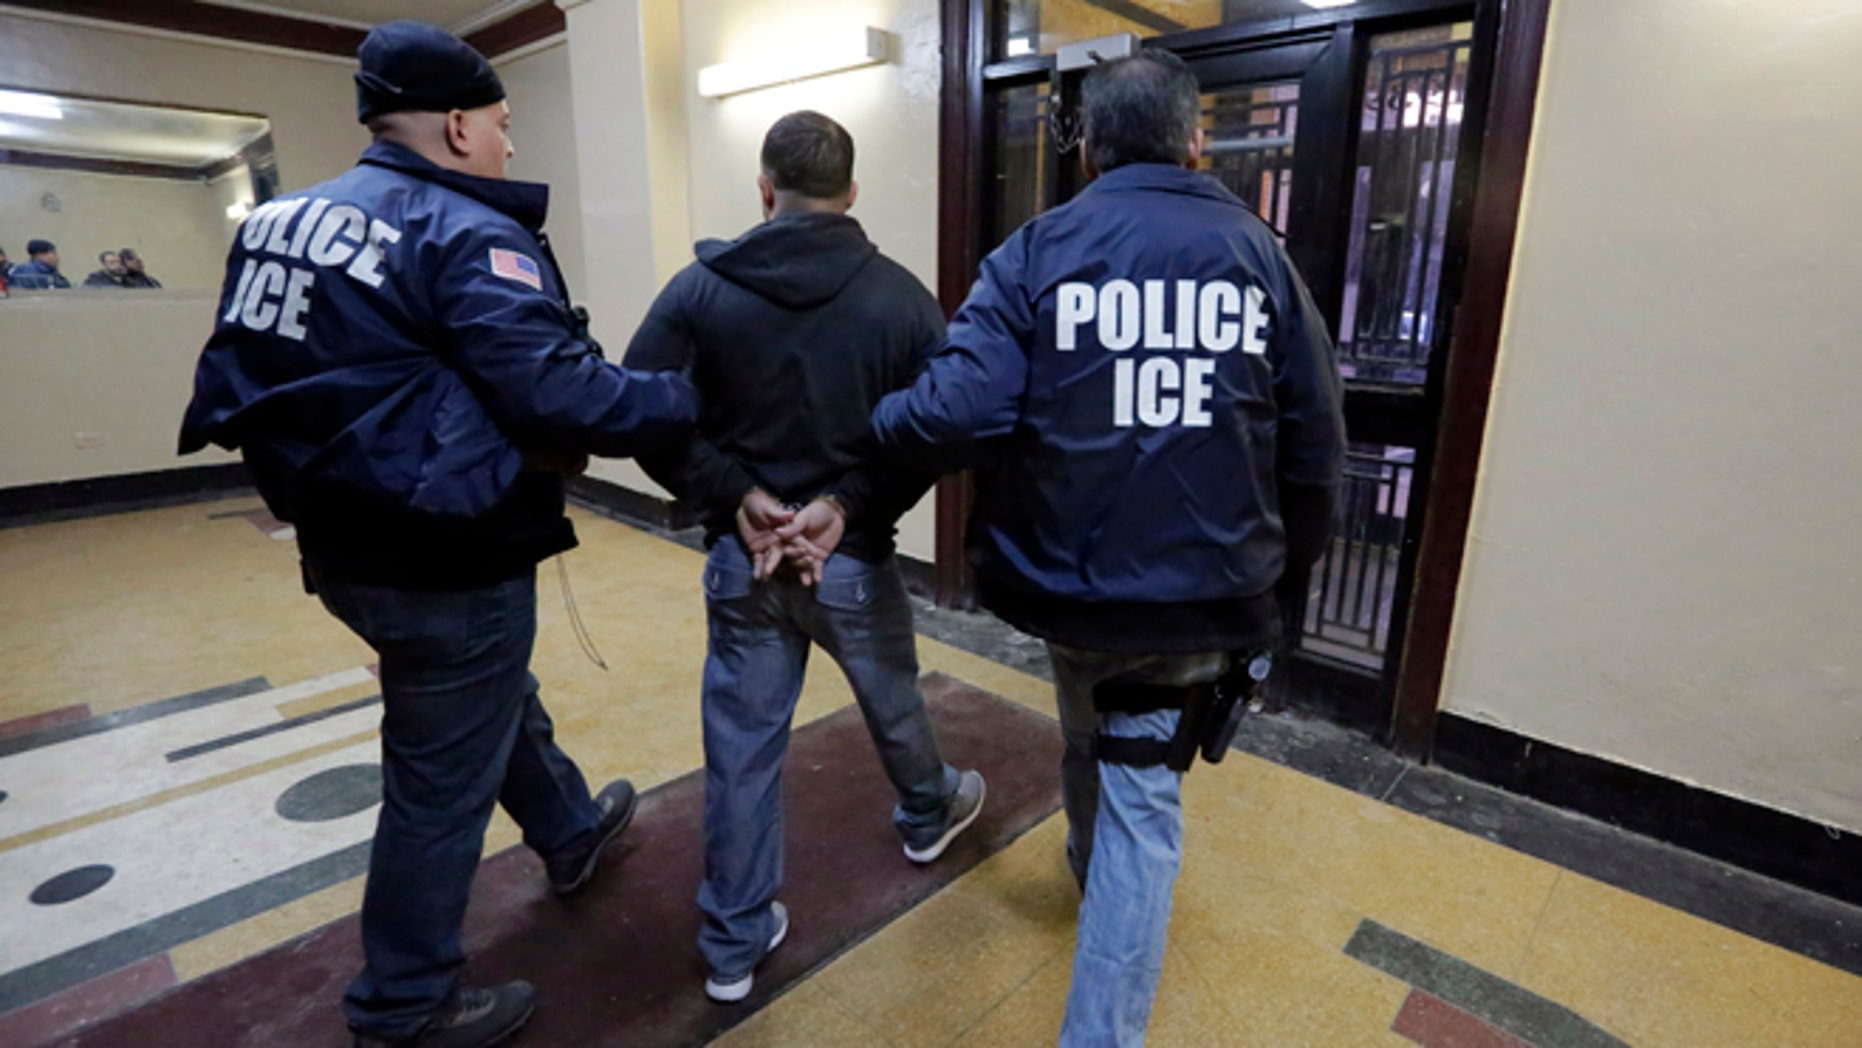 In this March 3, 2015 photo, Immigration and Customs Enforcement officers escort an arrestee in an apartment building, in the Bronx borough of New York, during a series of early-morning raids. Immigrant and Customs Enforcement say an increasing number of cities and counties across the United States are limiting cooperation with the agency and putting its officers in dangerous situations as they track down foreign-born criminals. Instead, more of its force is out on the streets, eating up resources and conducting investigations because cities like New York and states like California have passed legislation that limits many of the detention requests issued by immigration authorities.  (AP Photo/Richard Drew)